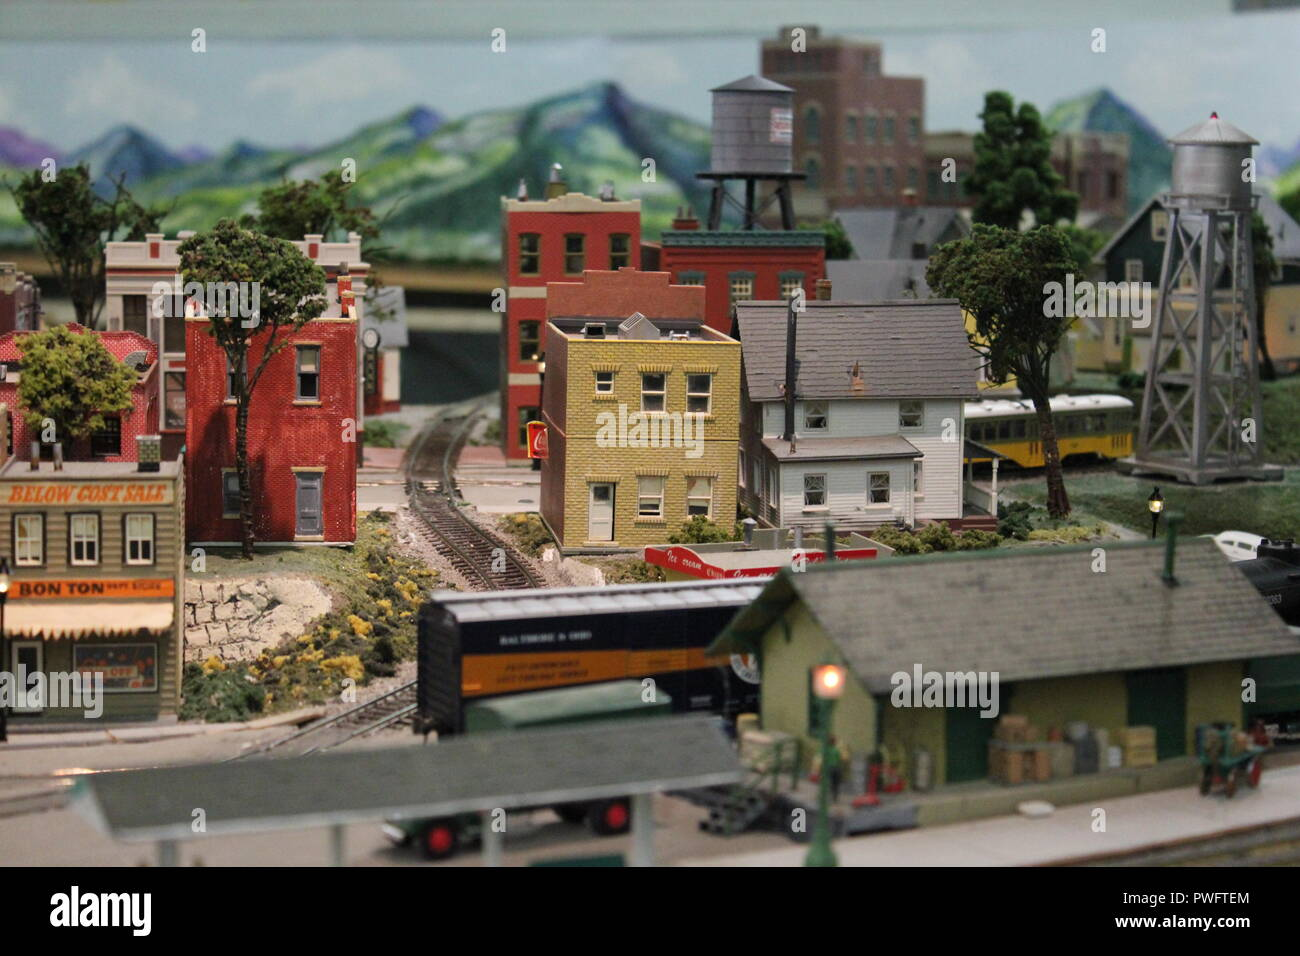 Really fantastic model railroading design in the Clarendon Garfield field house in Chicago, Illinois. - Stock Image